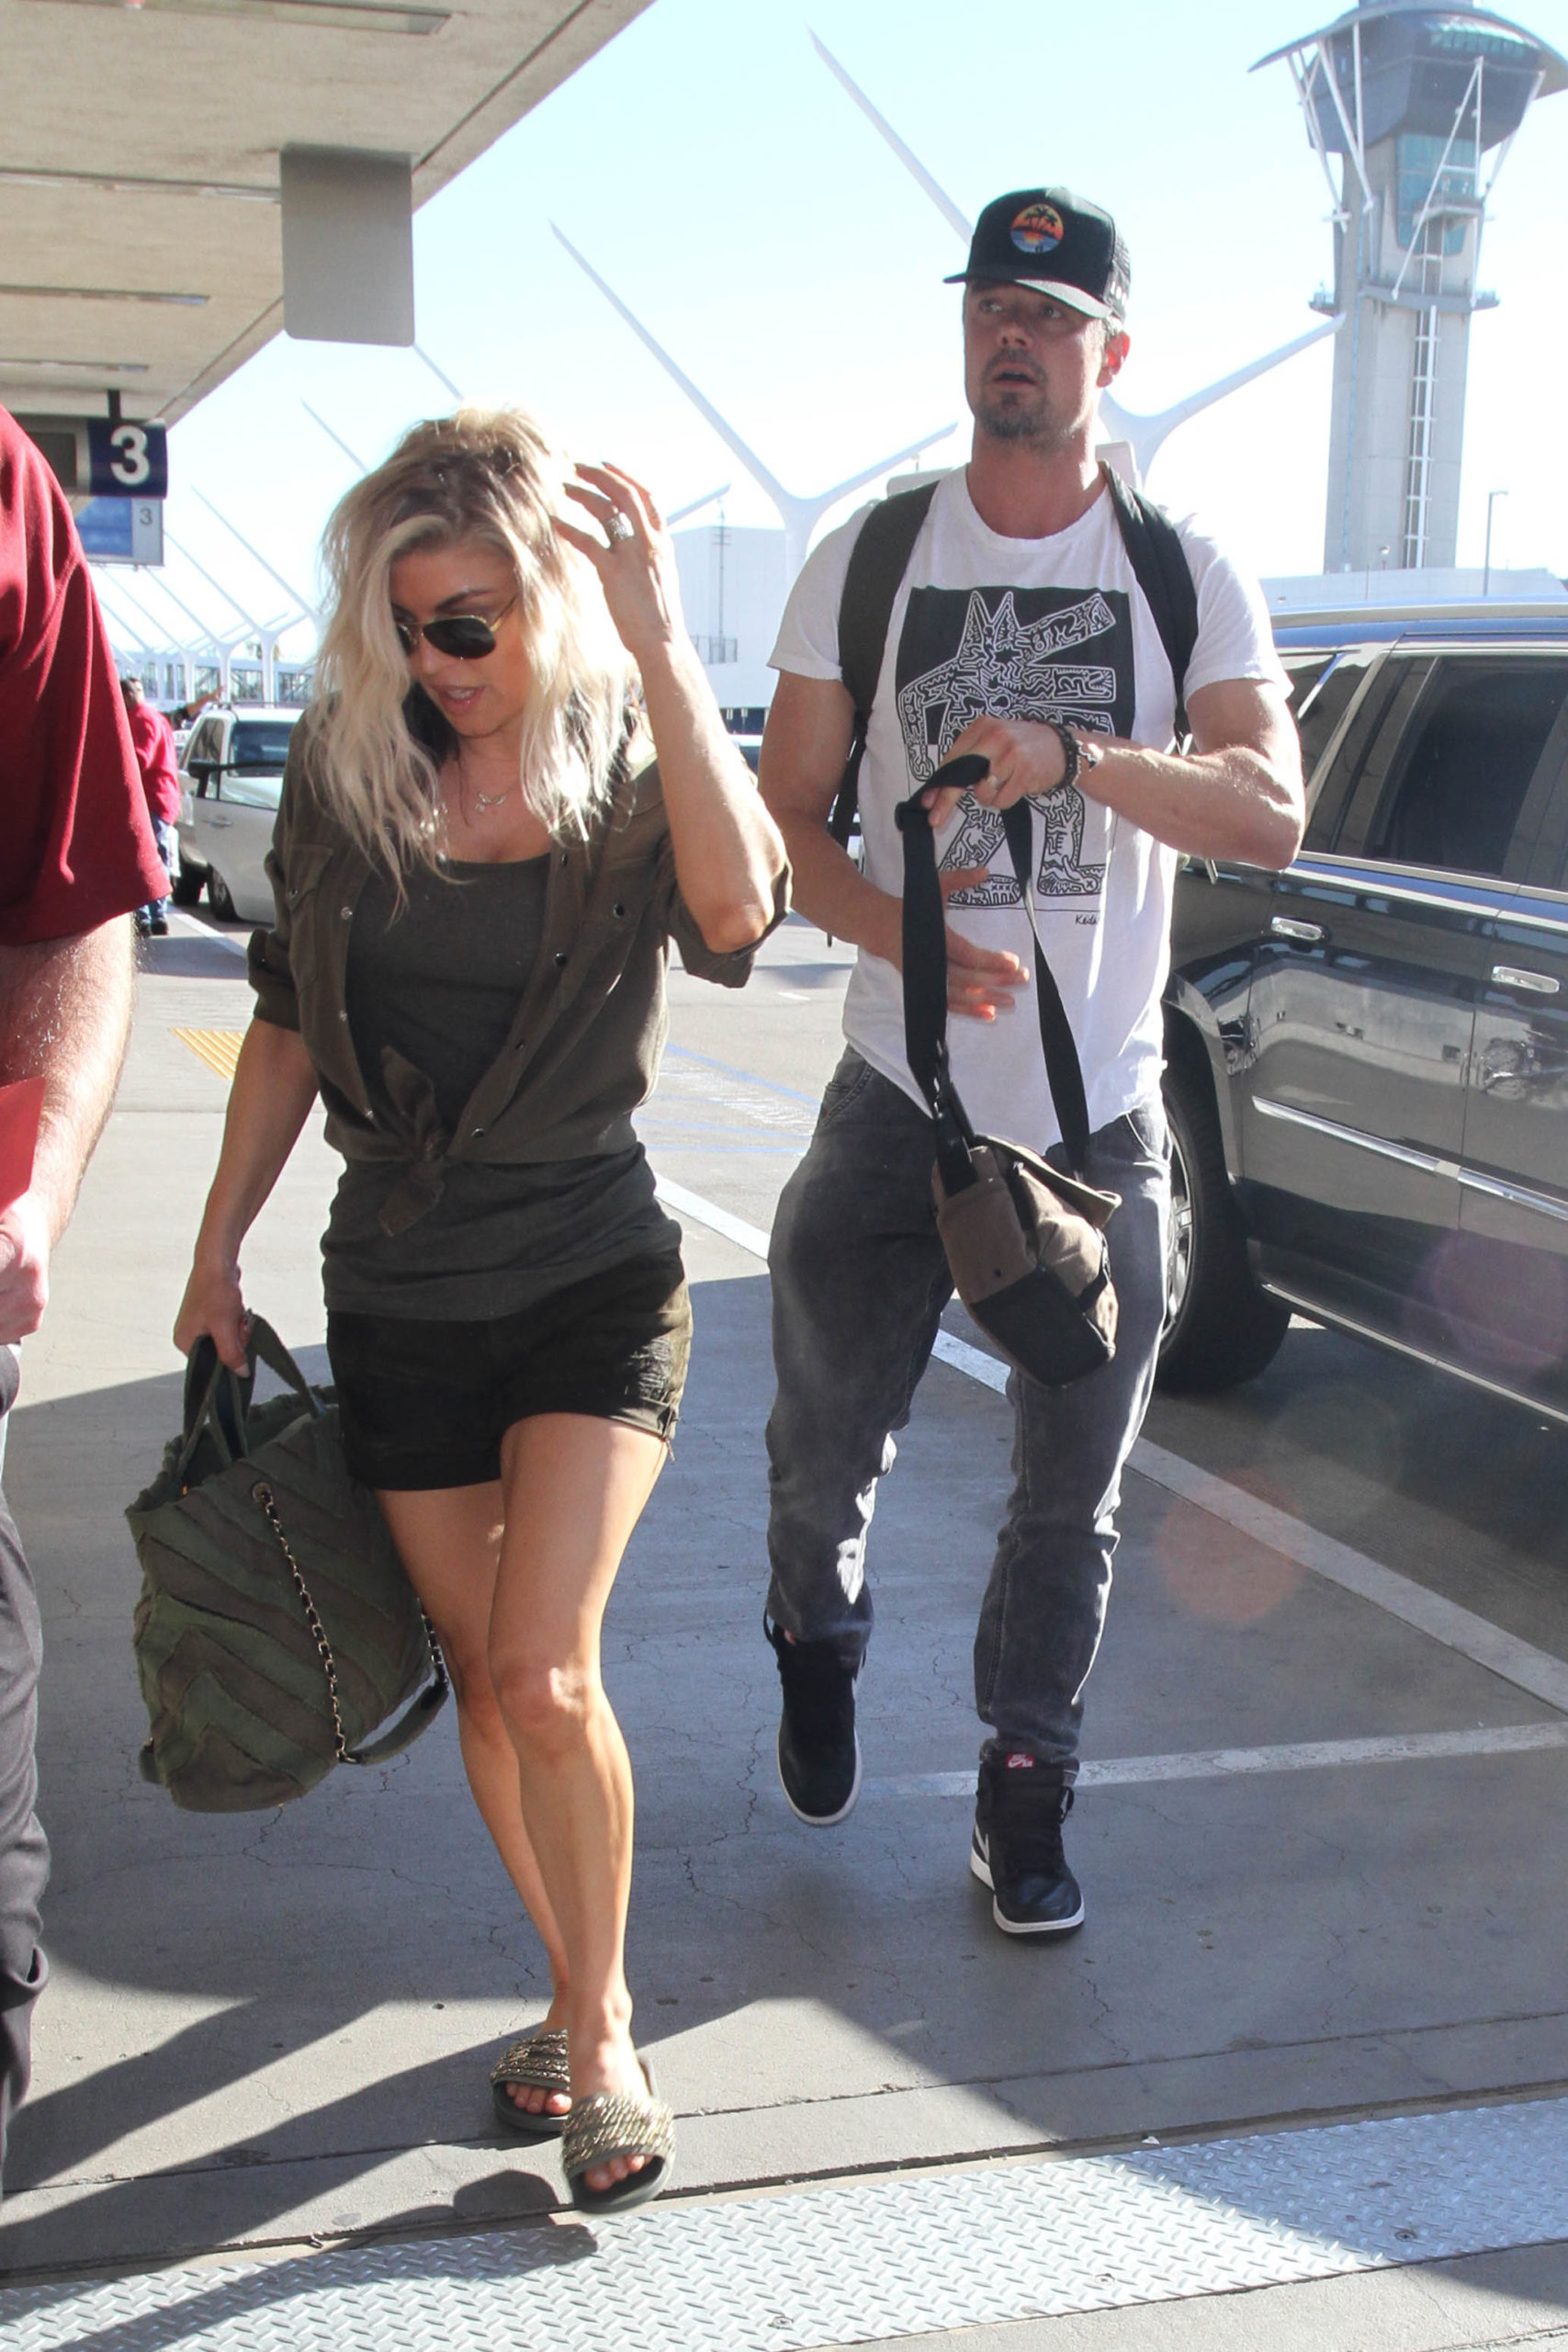 Another Hollywood couple bites the dust. Fergie & Josh Duhamel separate after 8 years of marriage.